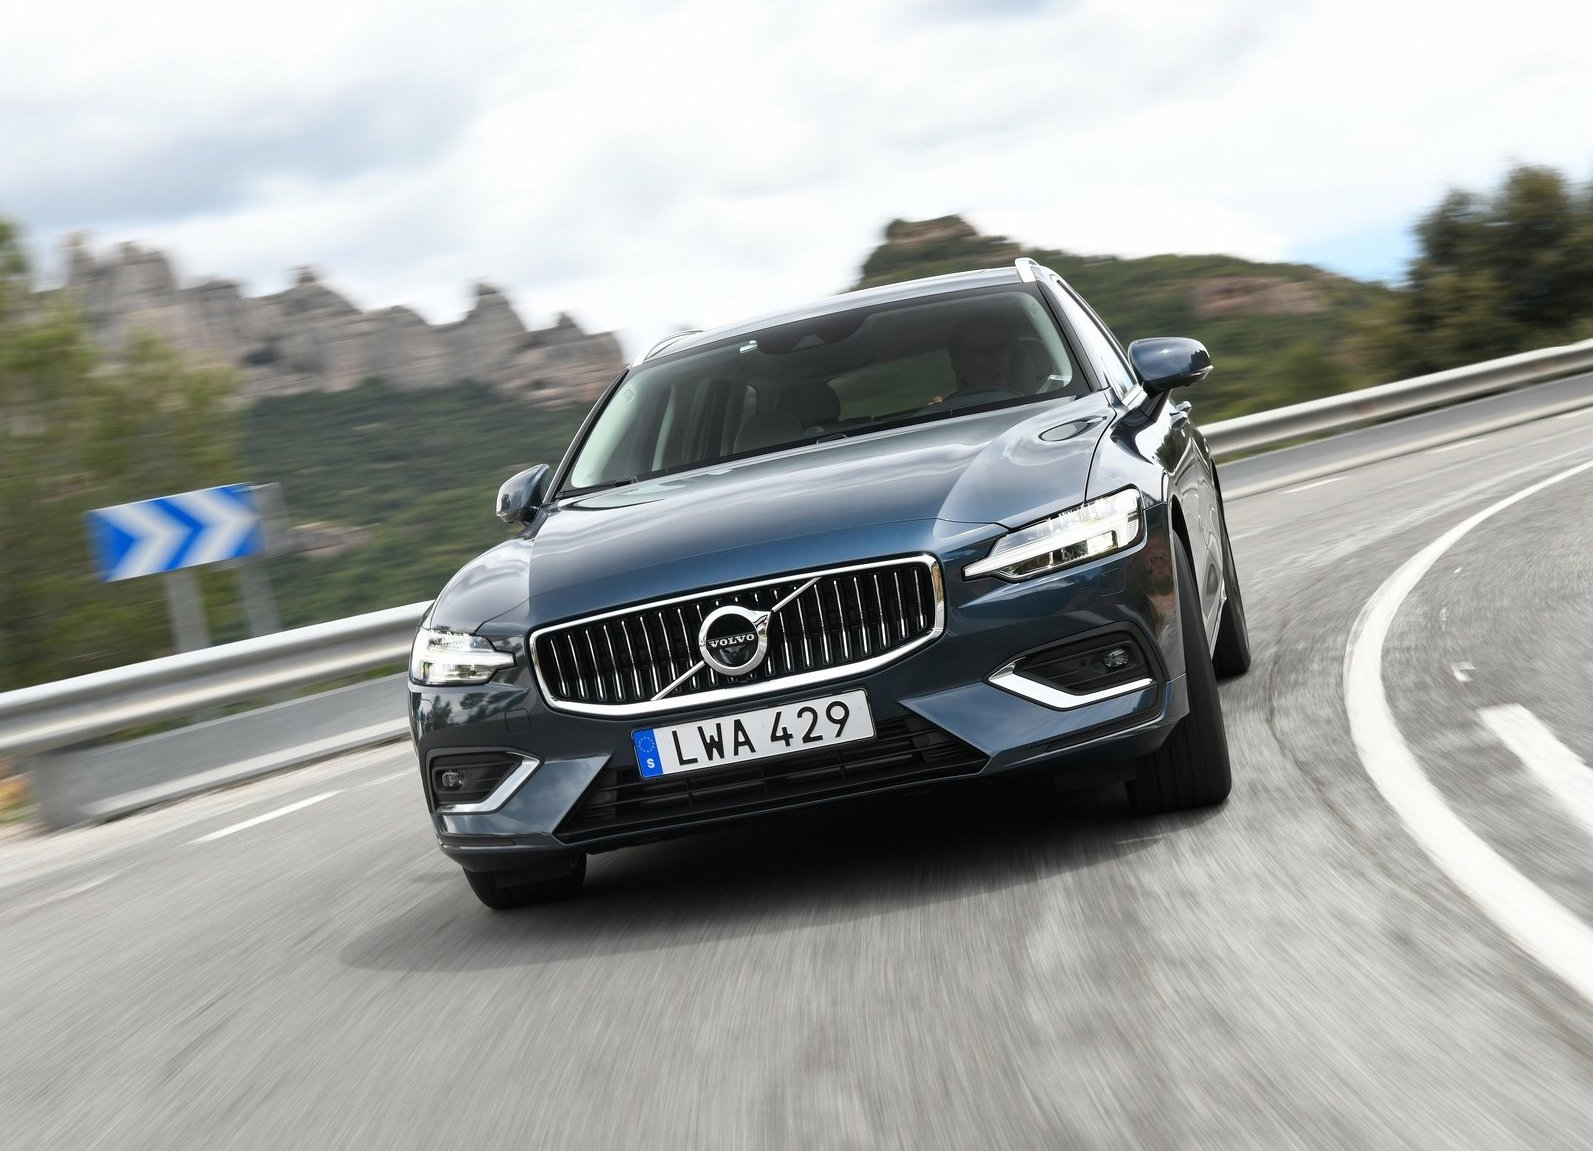 2019 Volvo V60 front driving low